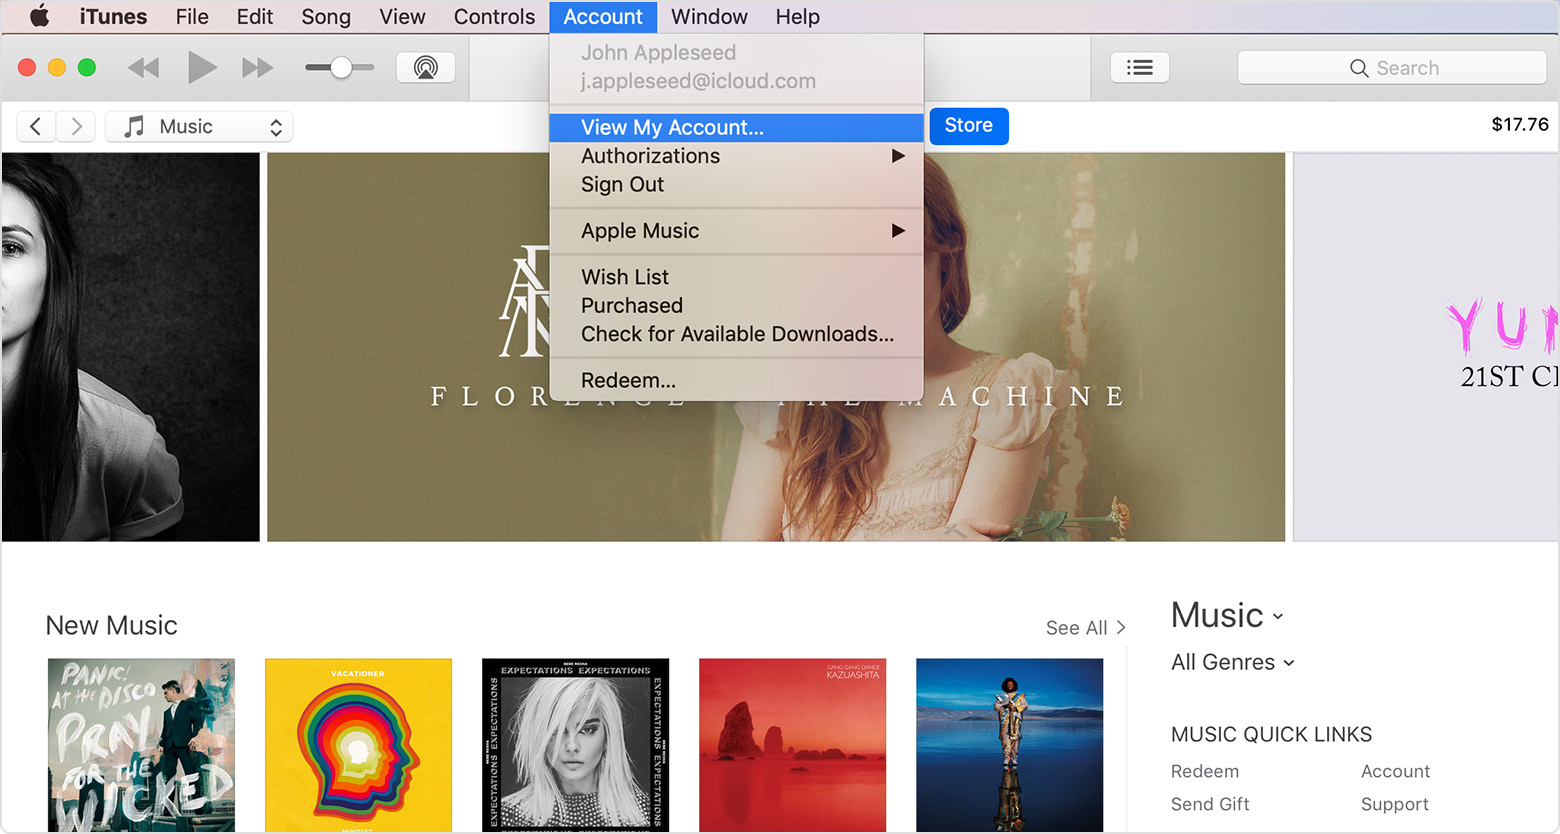 An iTunes window with the Account menu open in front of it. View My Account is chosen in the menu.